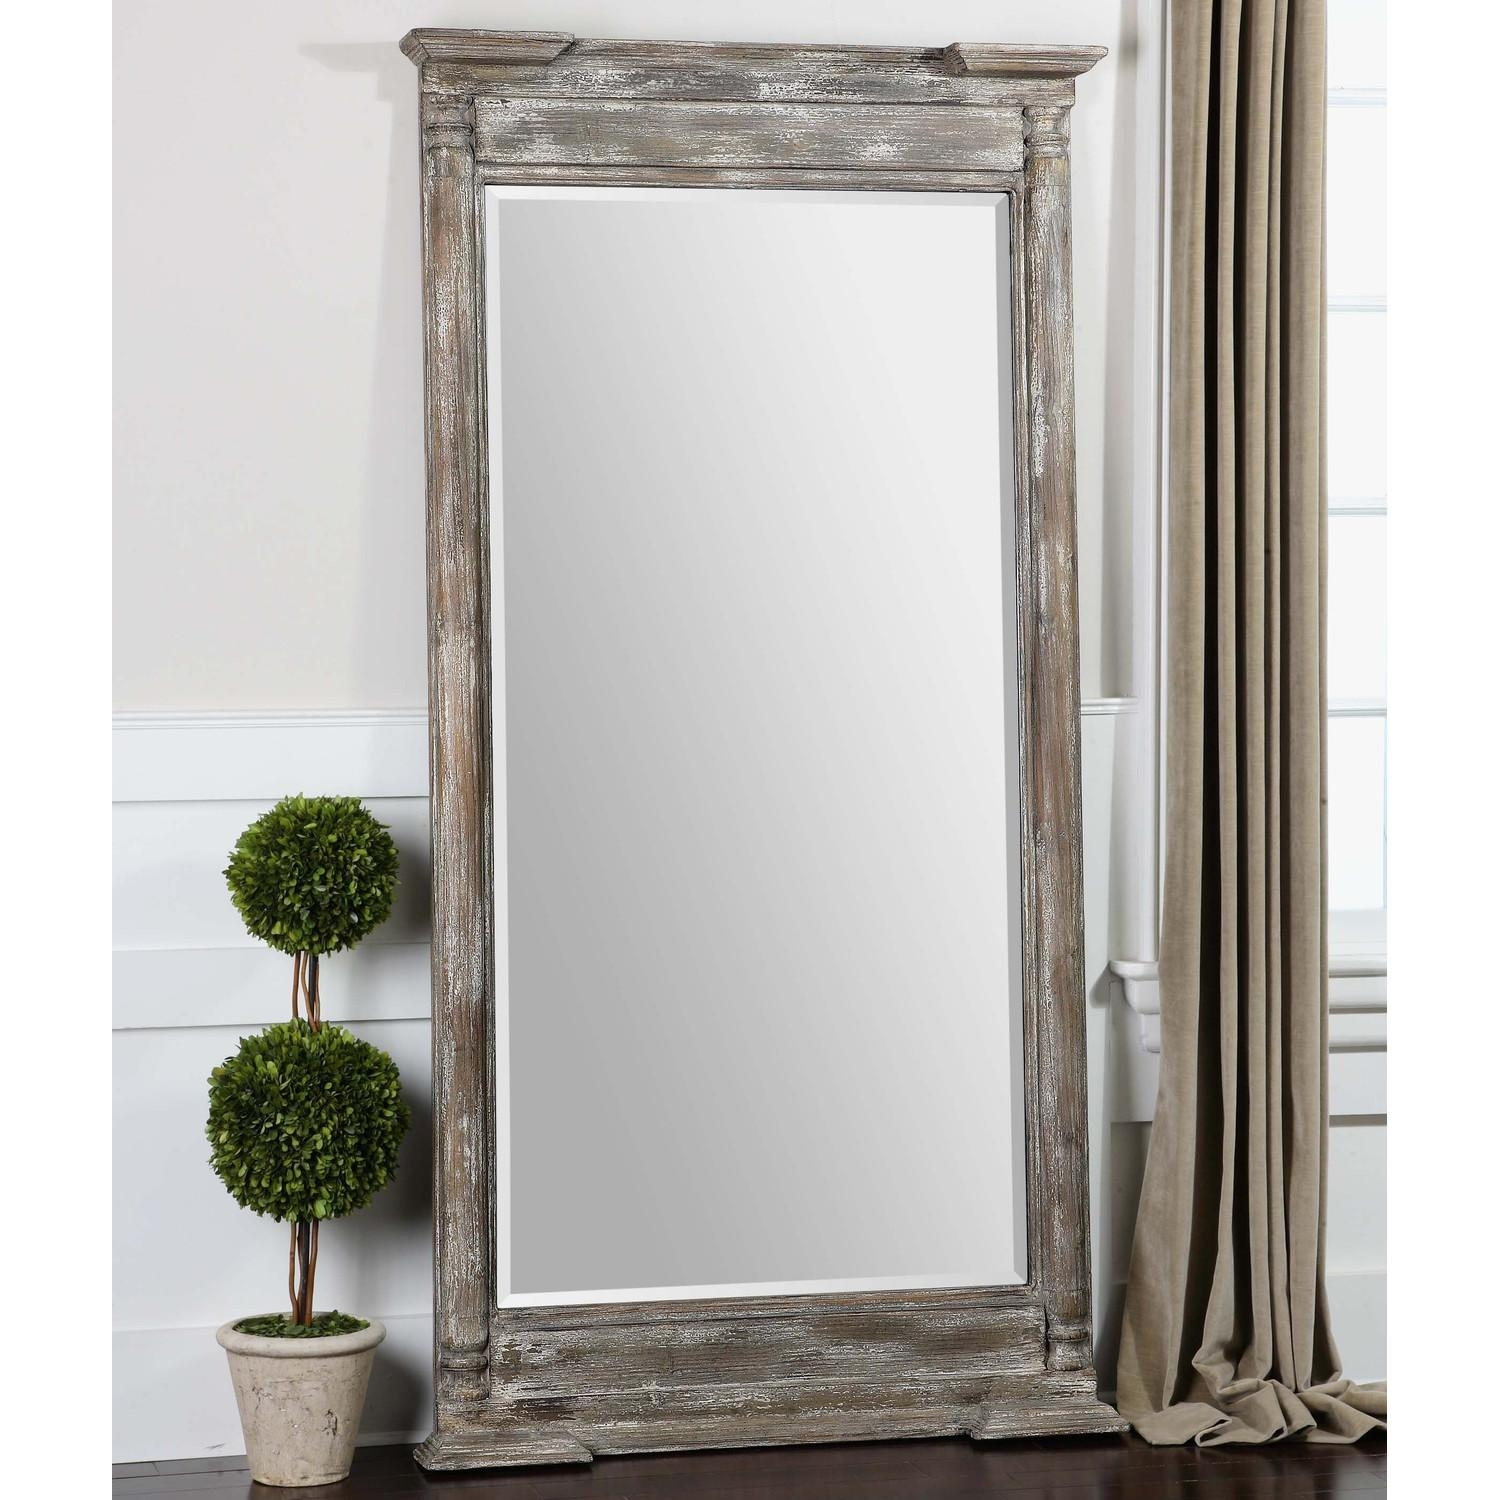 Extra Large Floor Length Mirror | Floor Decoration Regarding Very Large Mirrors For Sale (Photo 19 of 20)